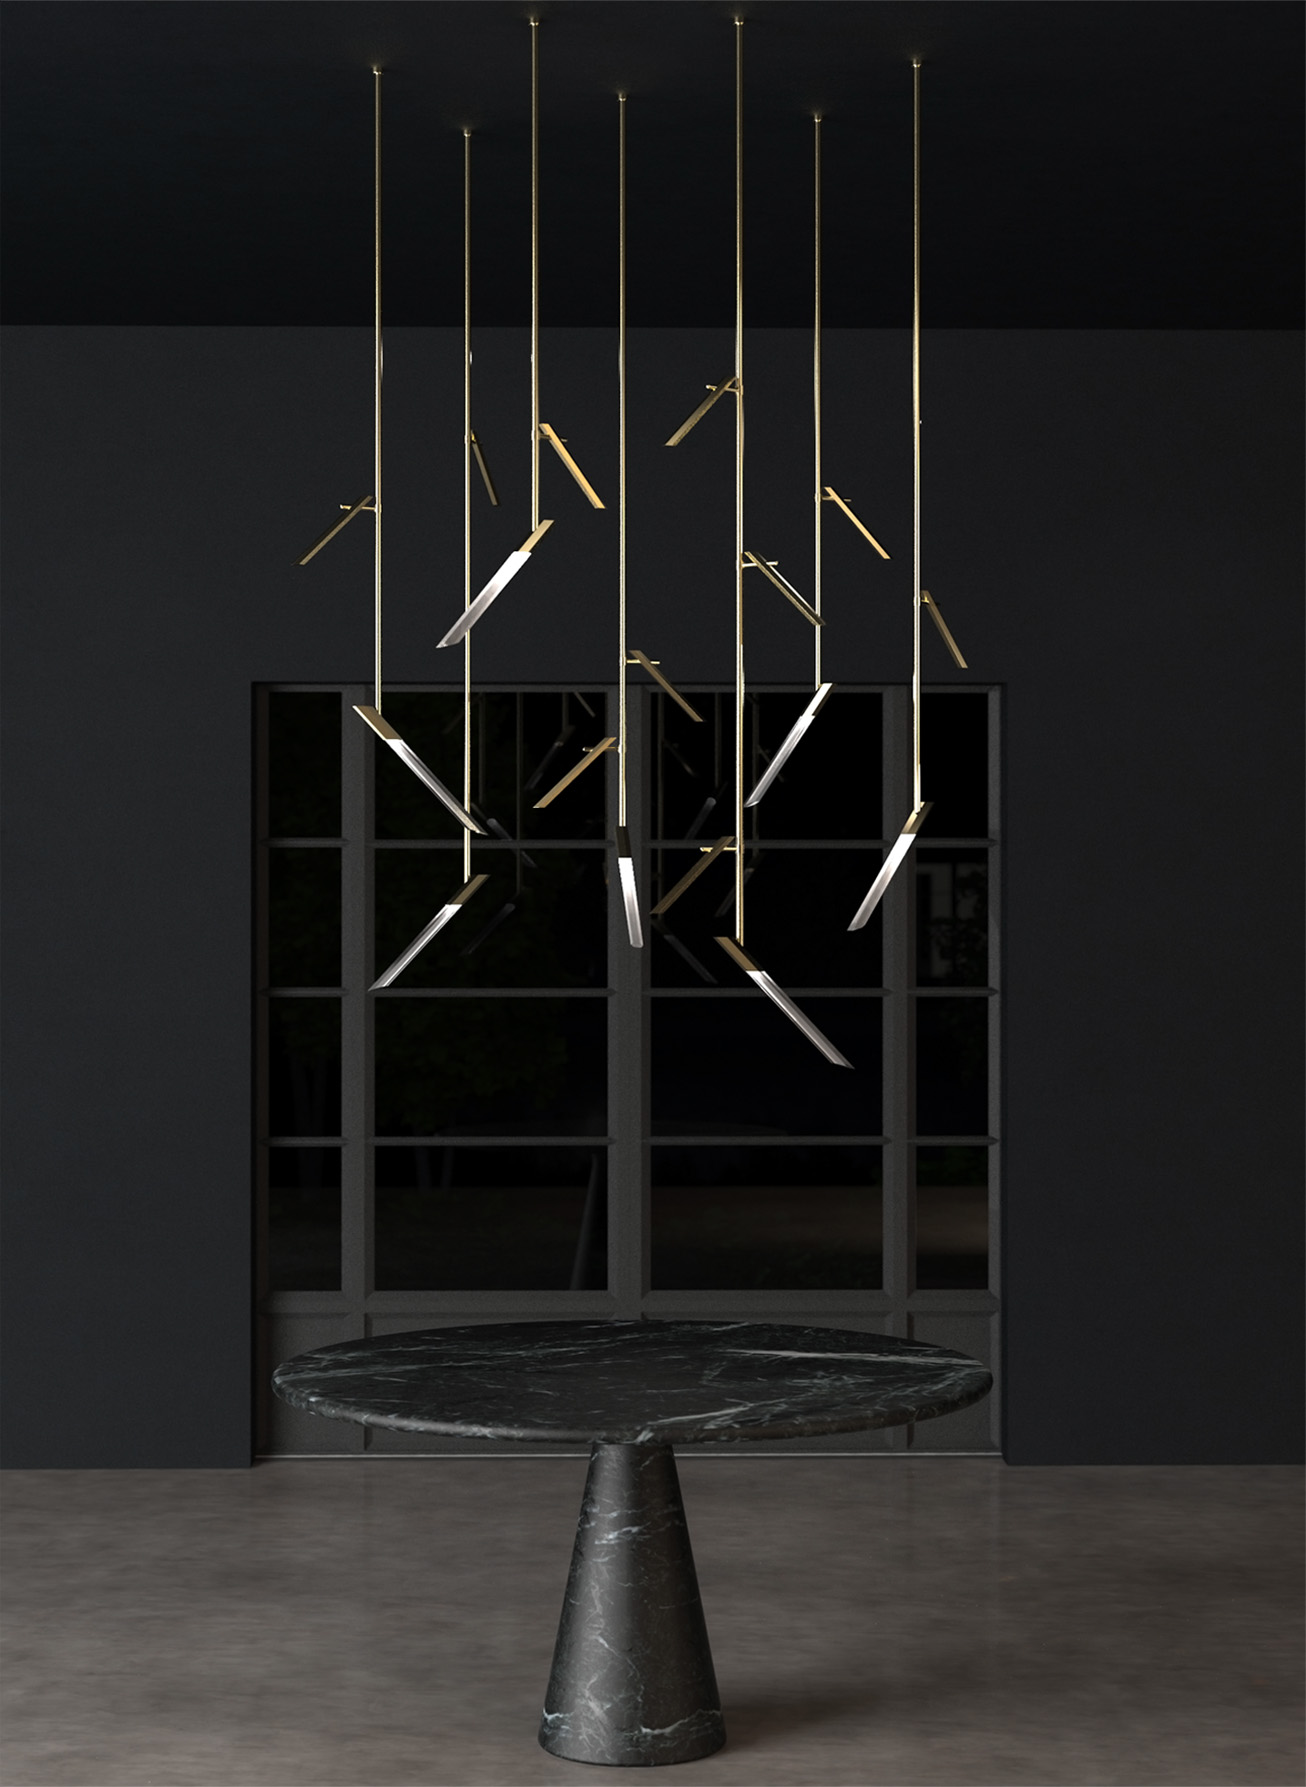 Contemporary Sculptural Lighting Feature Above Table Vertical Rods Angled Hexagonal Components Brass Tones Modern Luxury Living Nulty Bespoke